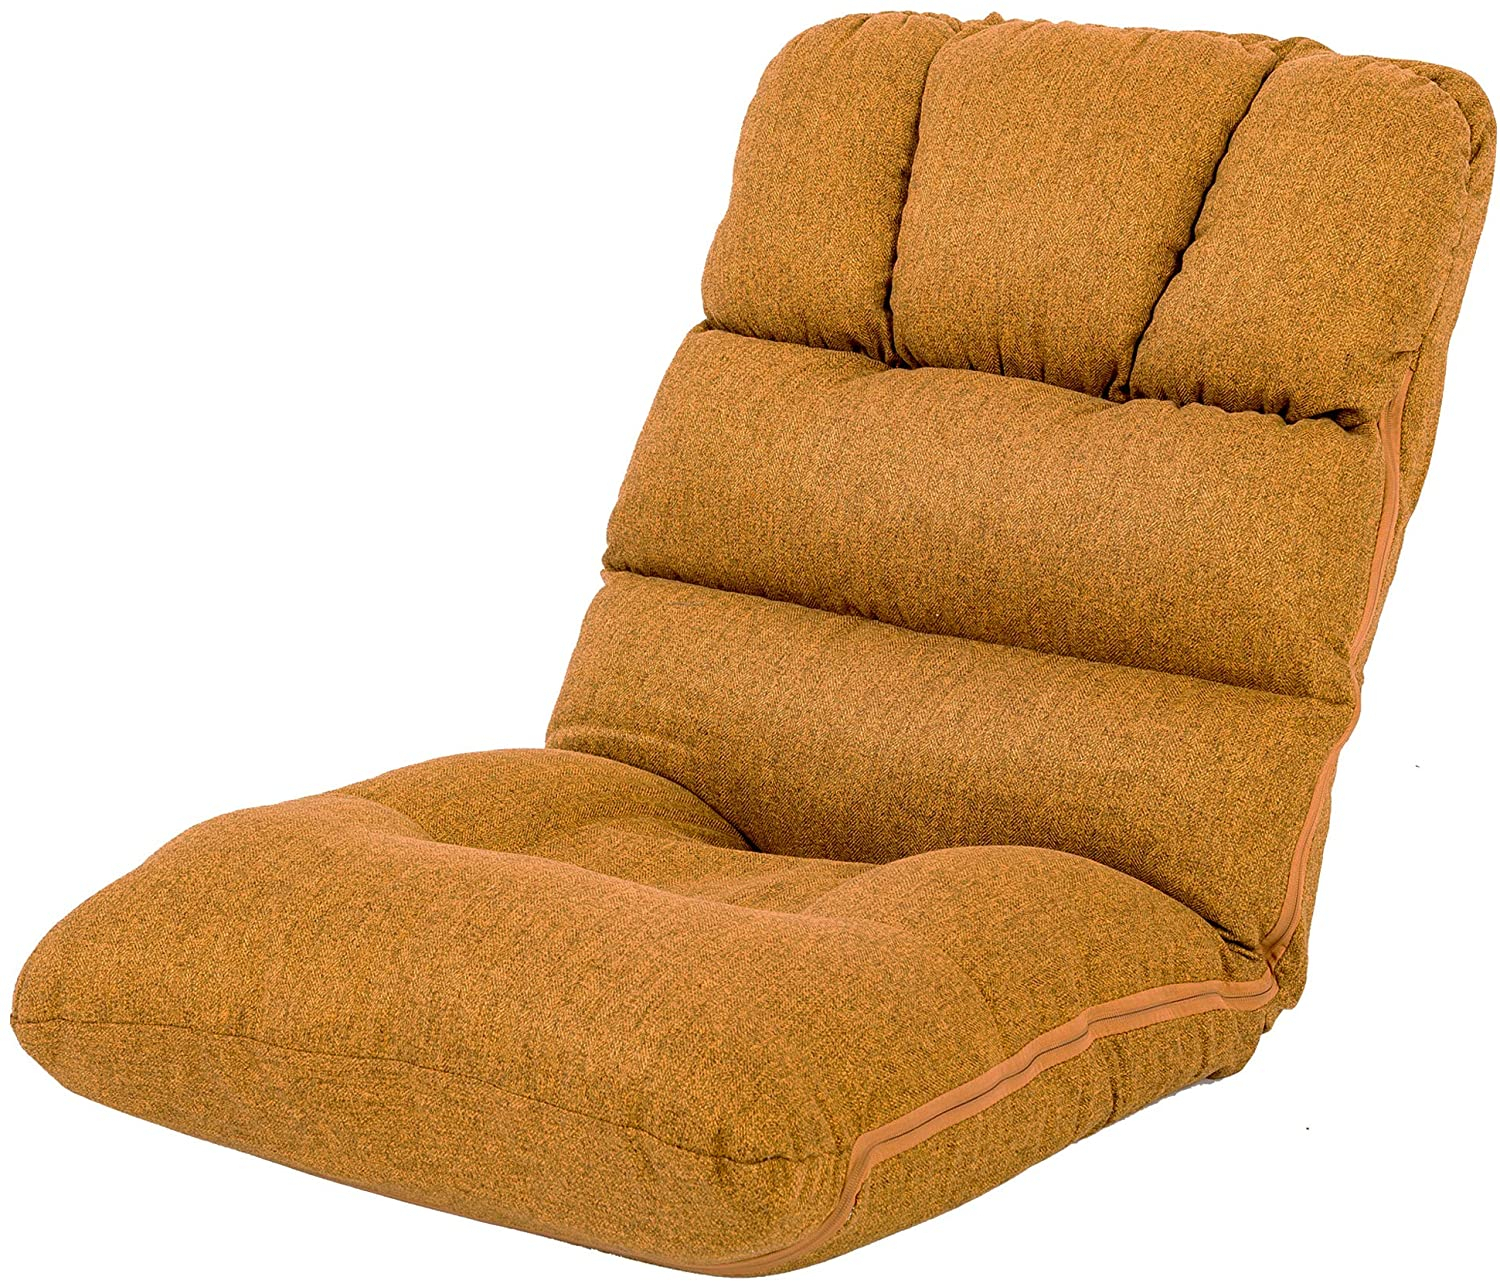 Waytrim Lazy Sofa Bed Fold Floor Gaming Chair Soft Sleeper In Gaming Sofa Chairs (View 12 of 15)